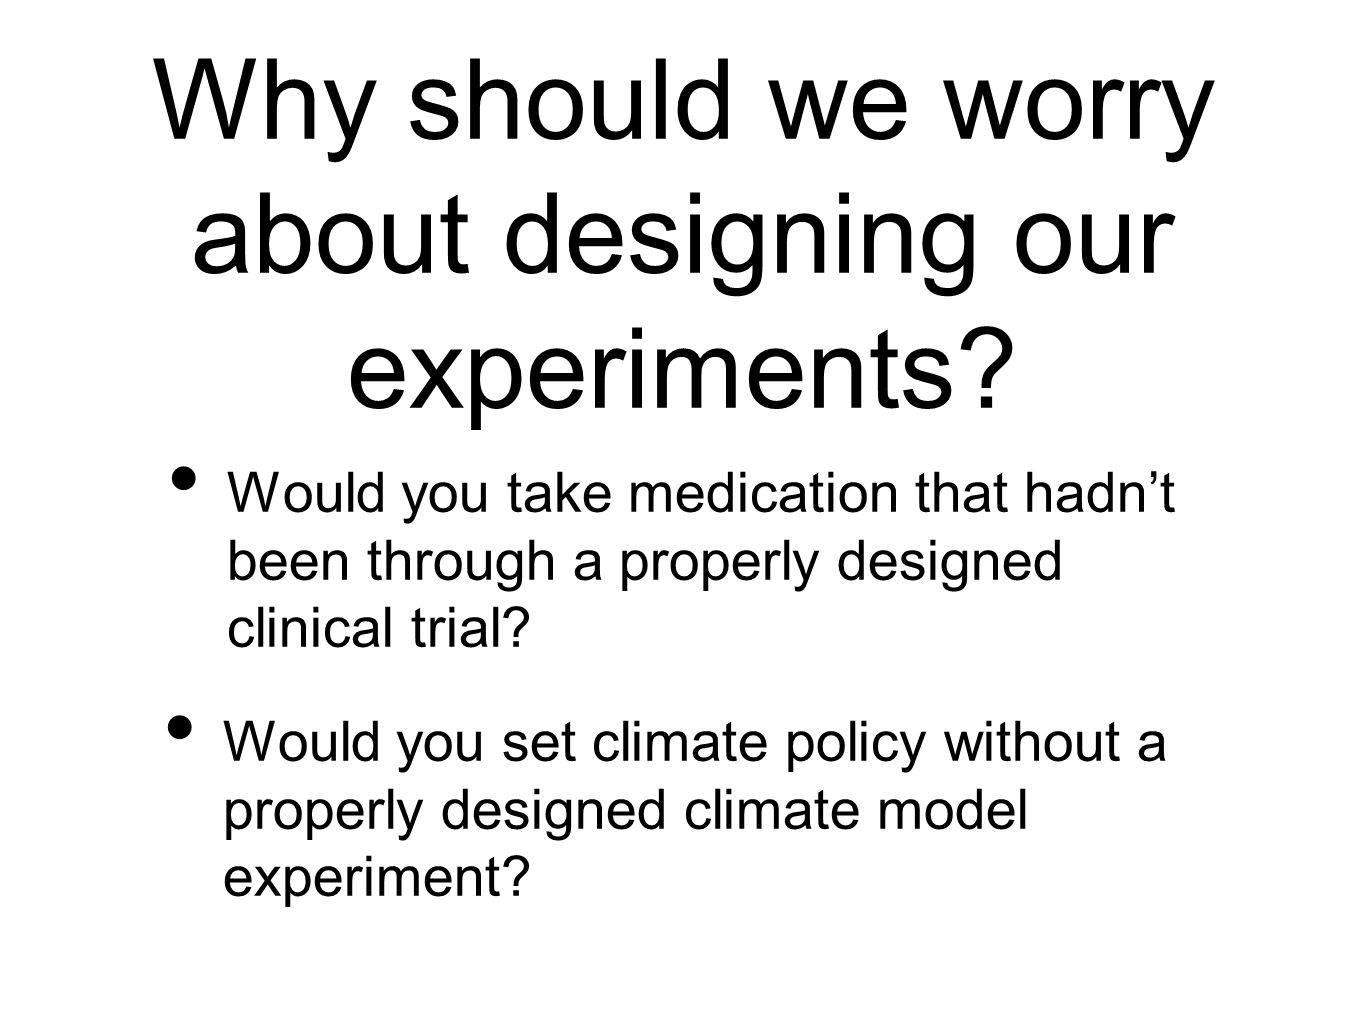 Why should we worry about designing our experiments